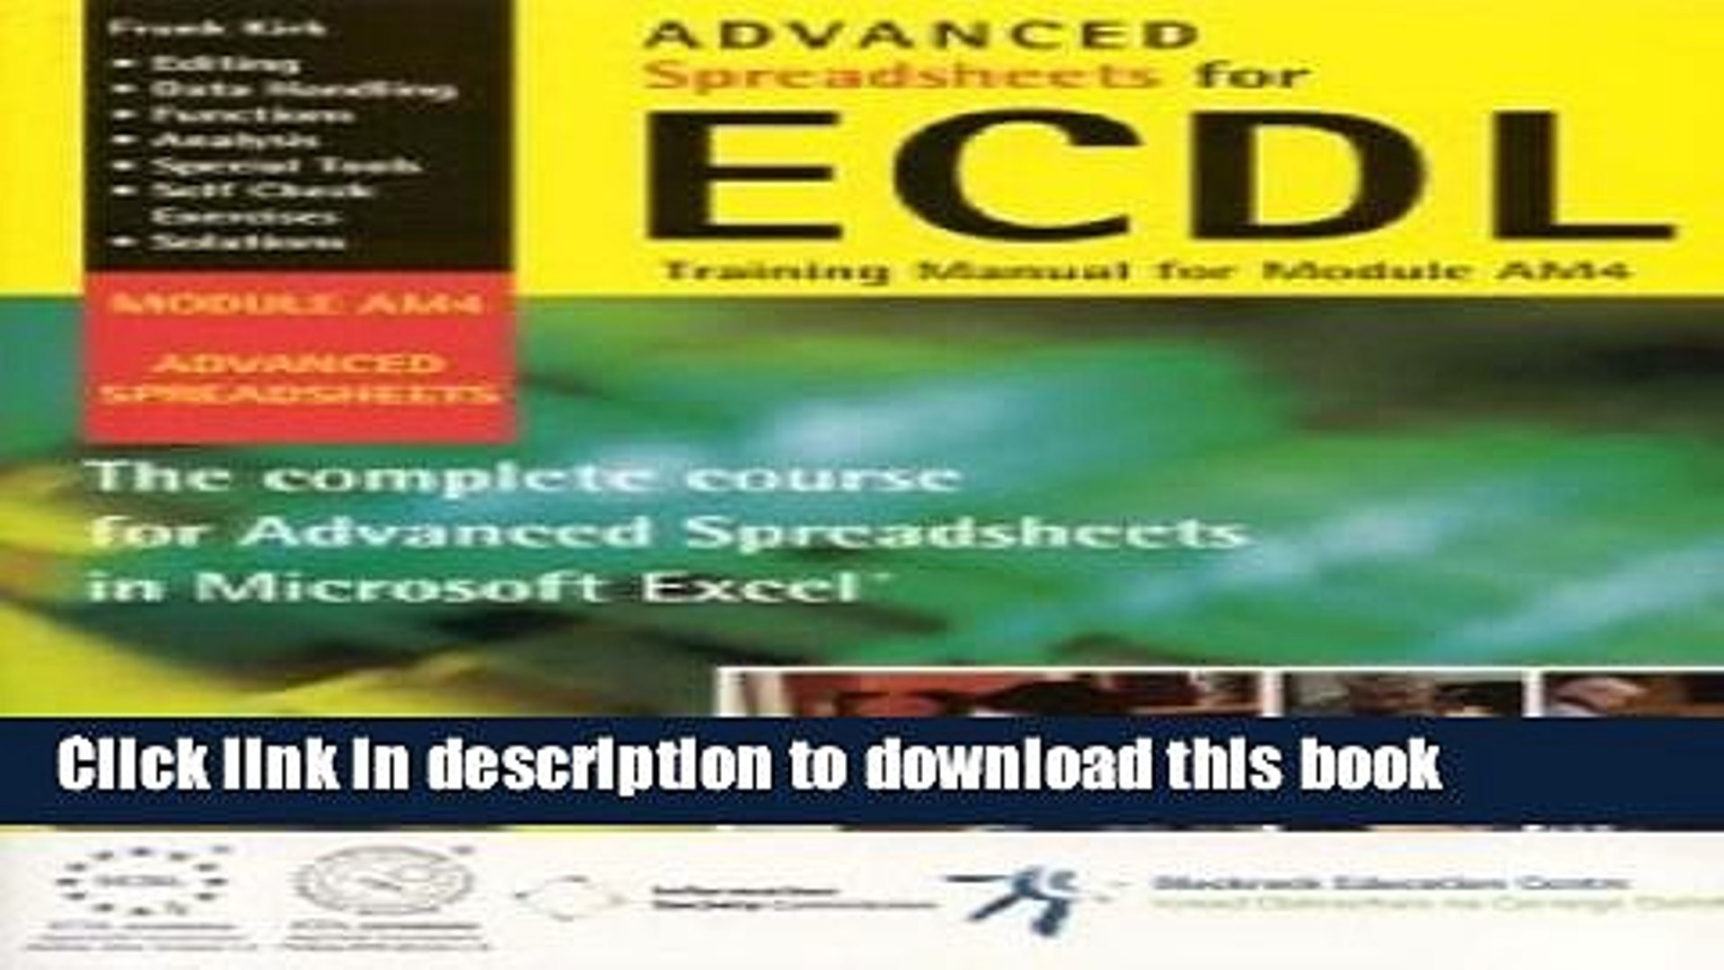 Ecdl Spreadsheets For Books Advanced Spreadsheets For Ecdl: Training Manual For Module Am4 Free  Online